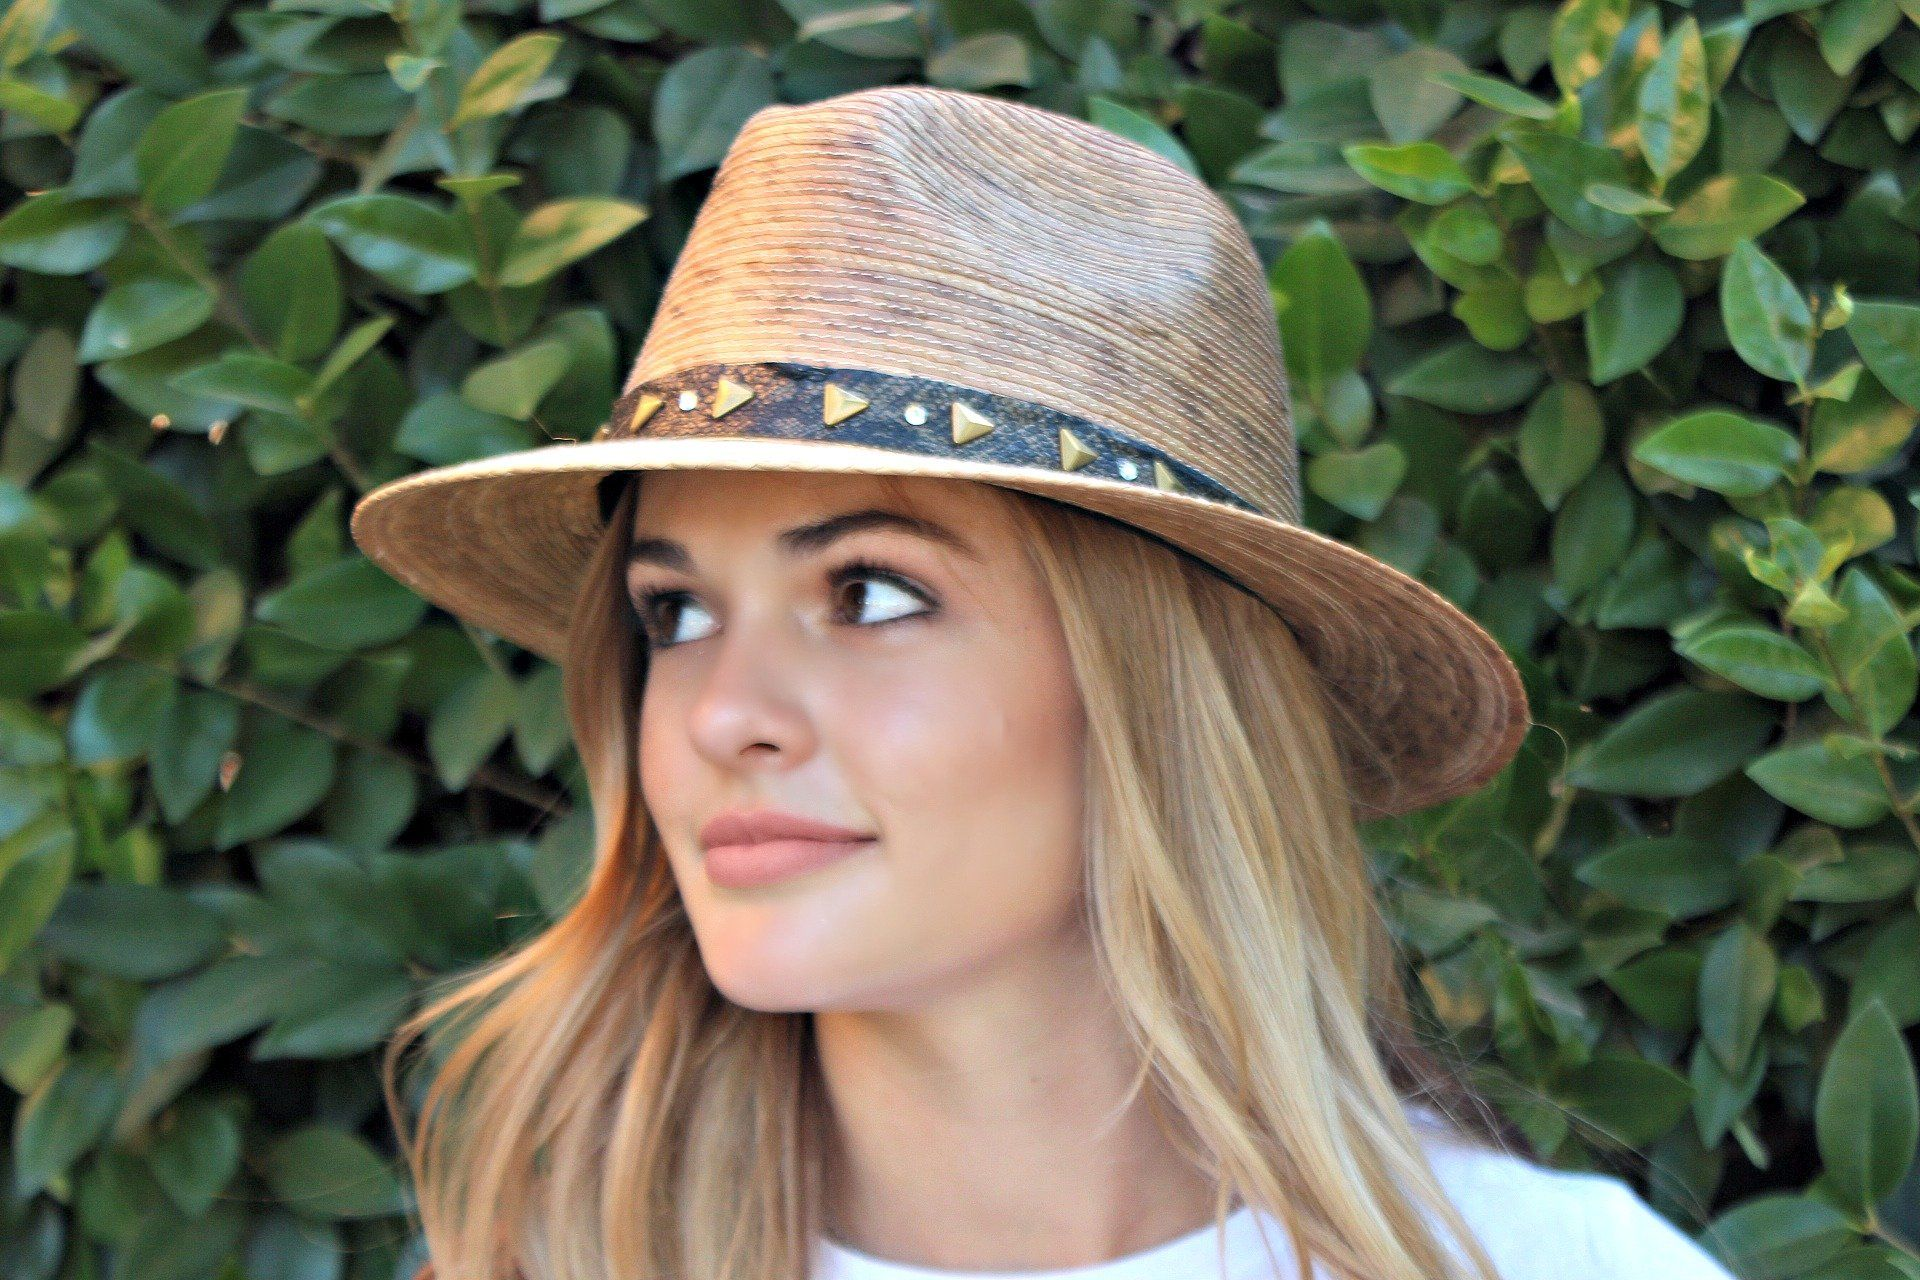 Handmade Palm Panama With Snakeskin Embellishment Summer Hats For Women Beach Hats Outfit Outfits With Hats